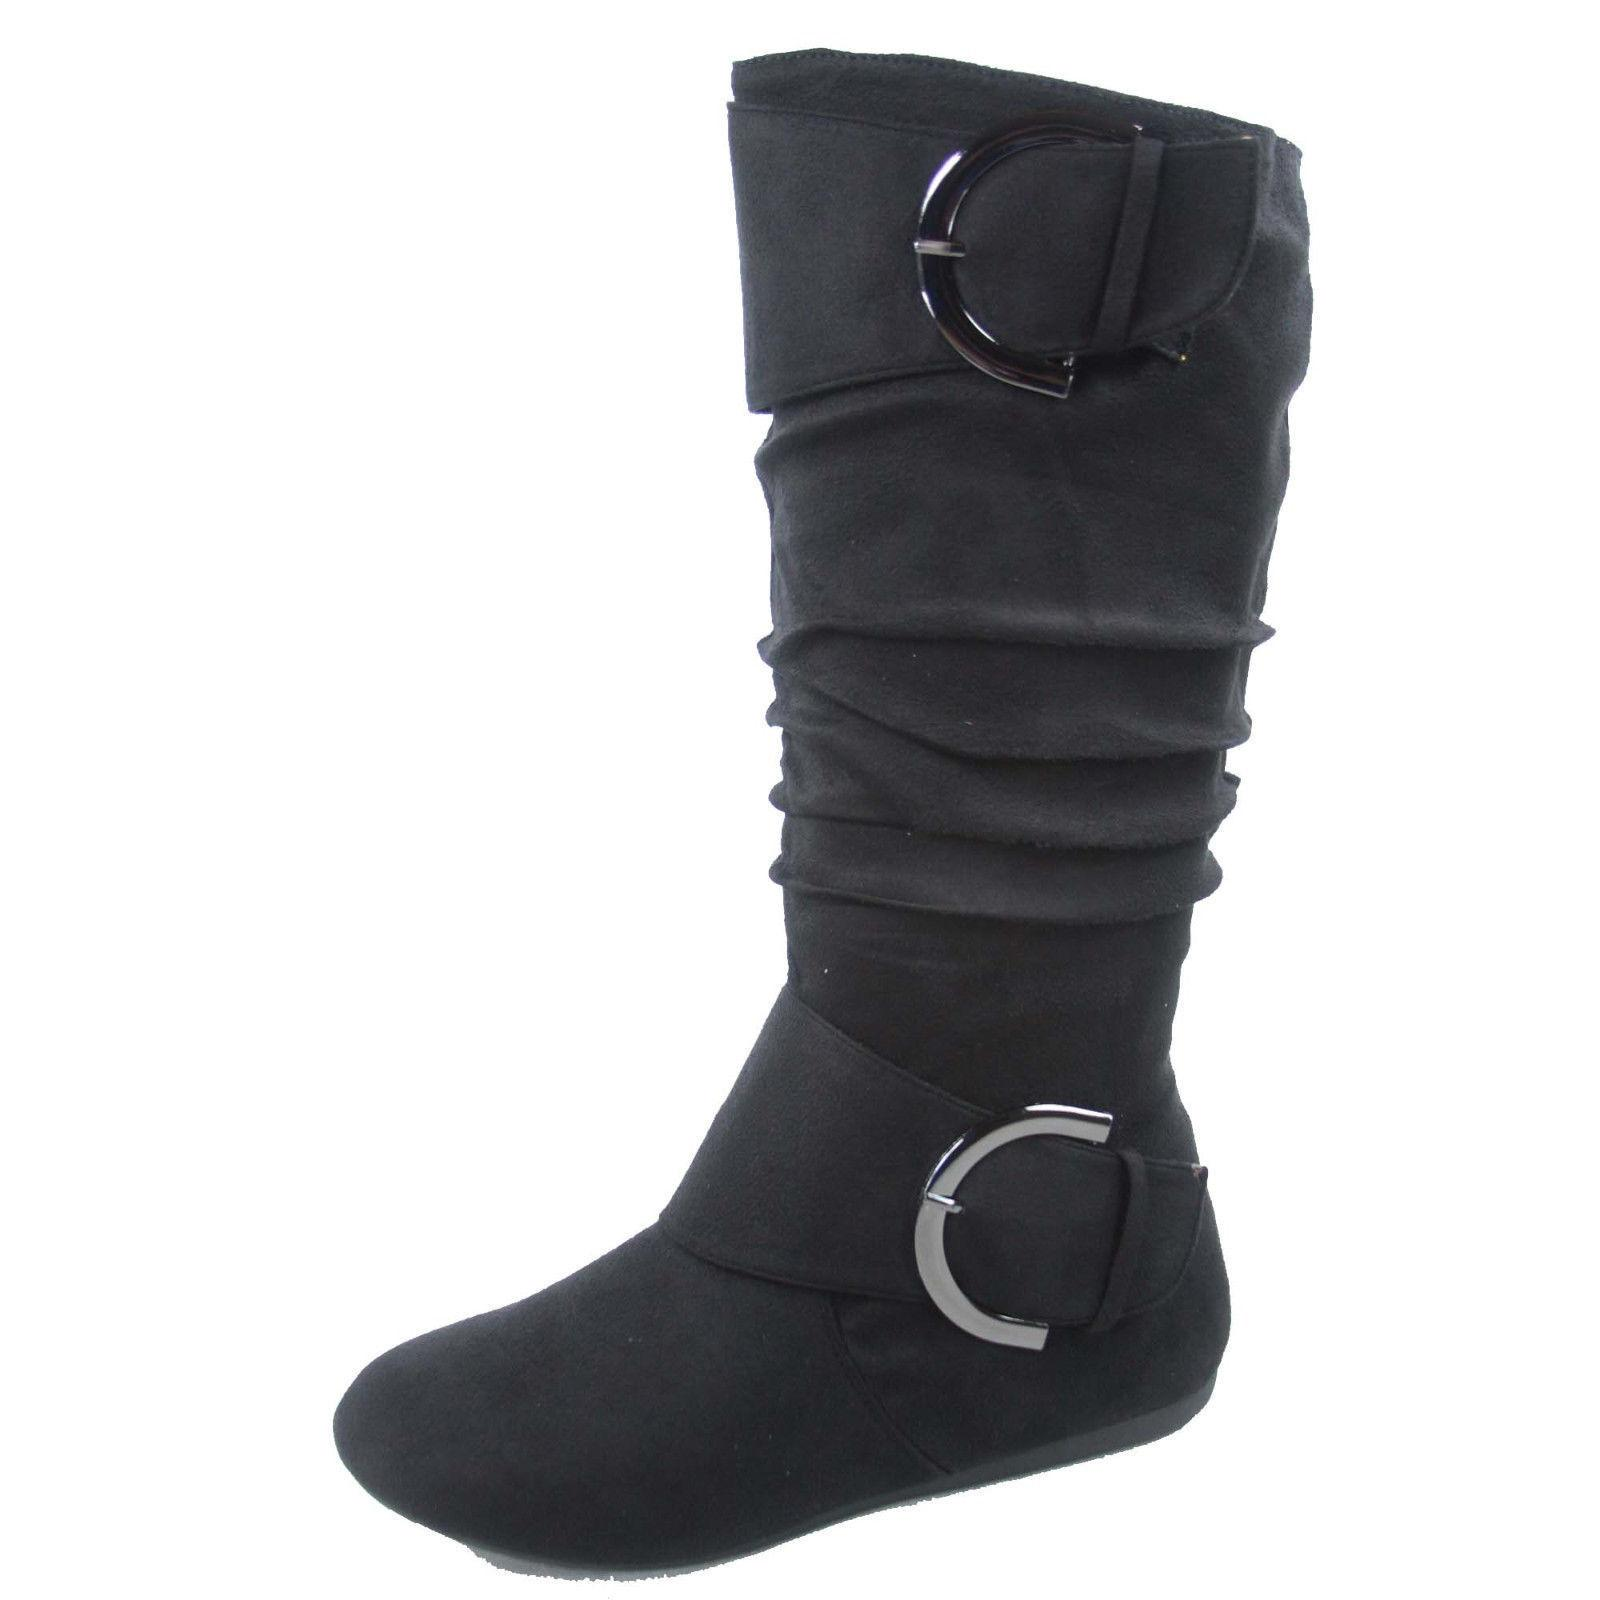 Women's Slouch Comfort Casual Flat Calf Round Toe Boot shoes